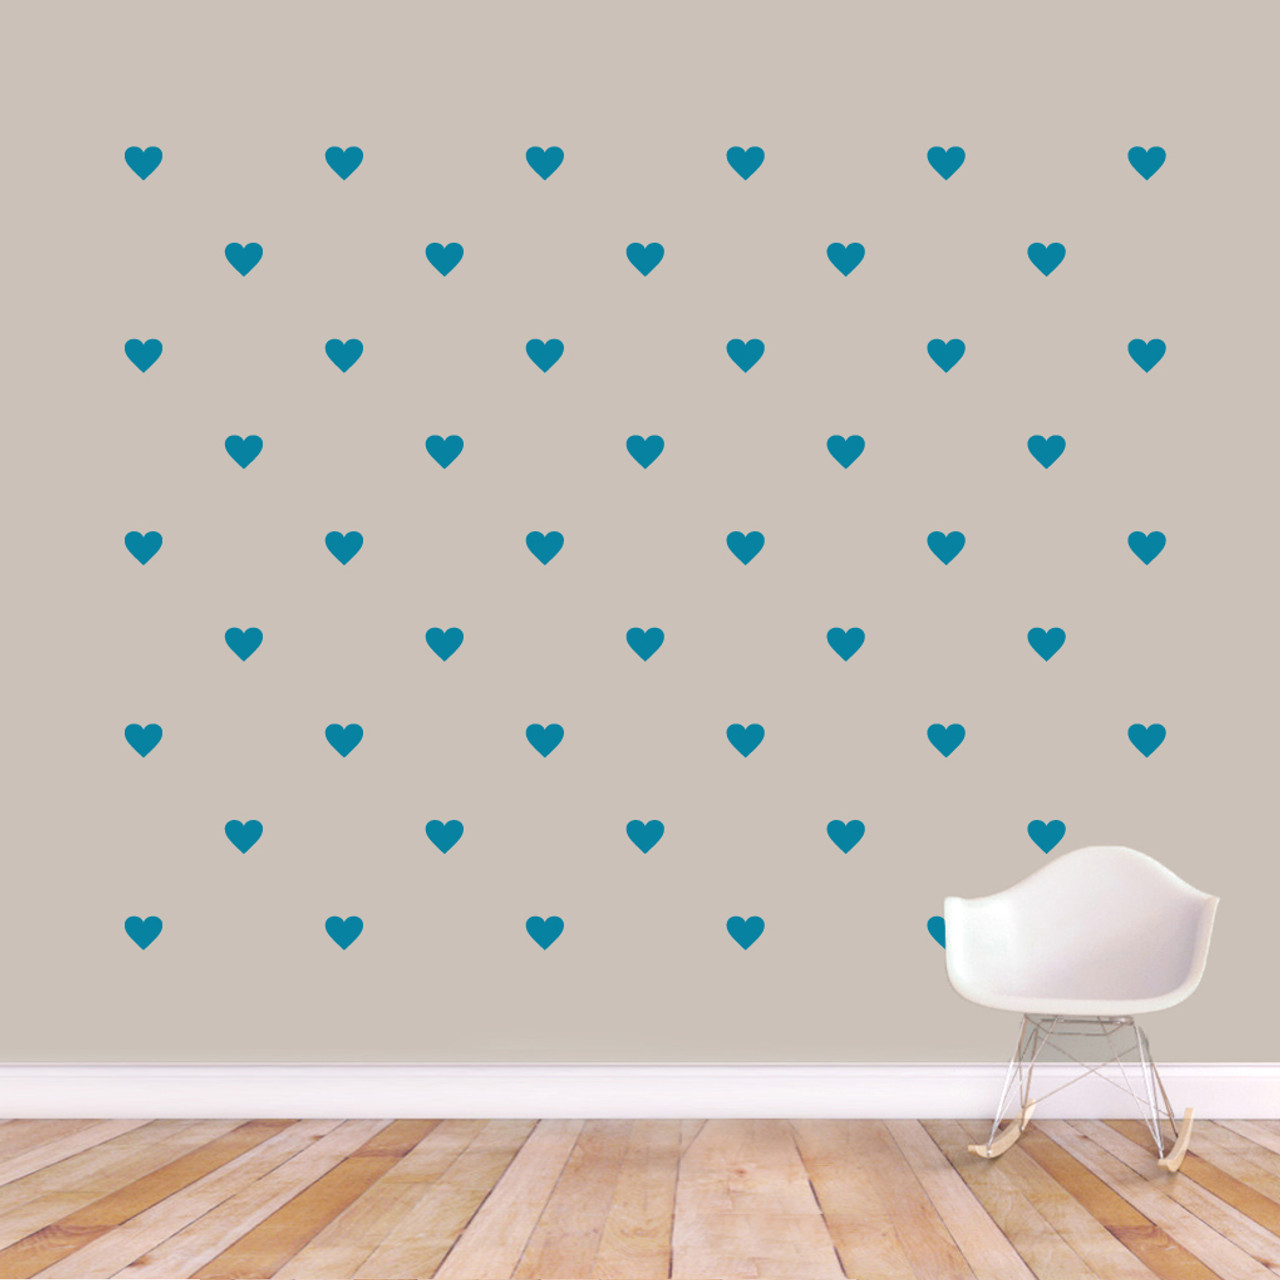 Hearts Wall Decal Pack - Shapes, Love, Pattern, Bedroom, Nursery, Wall Art  Decal